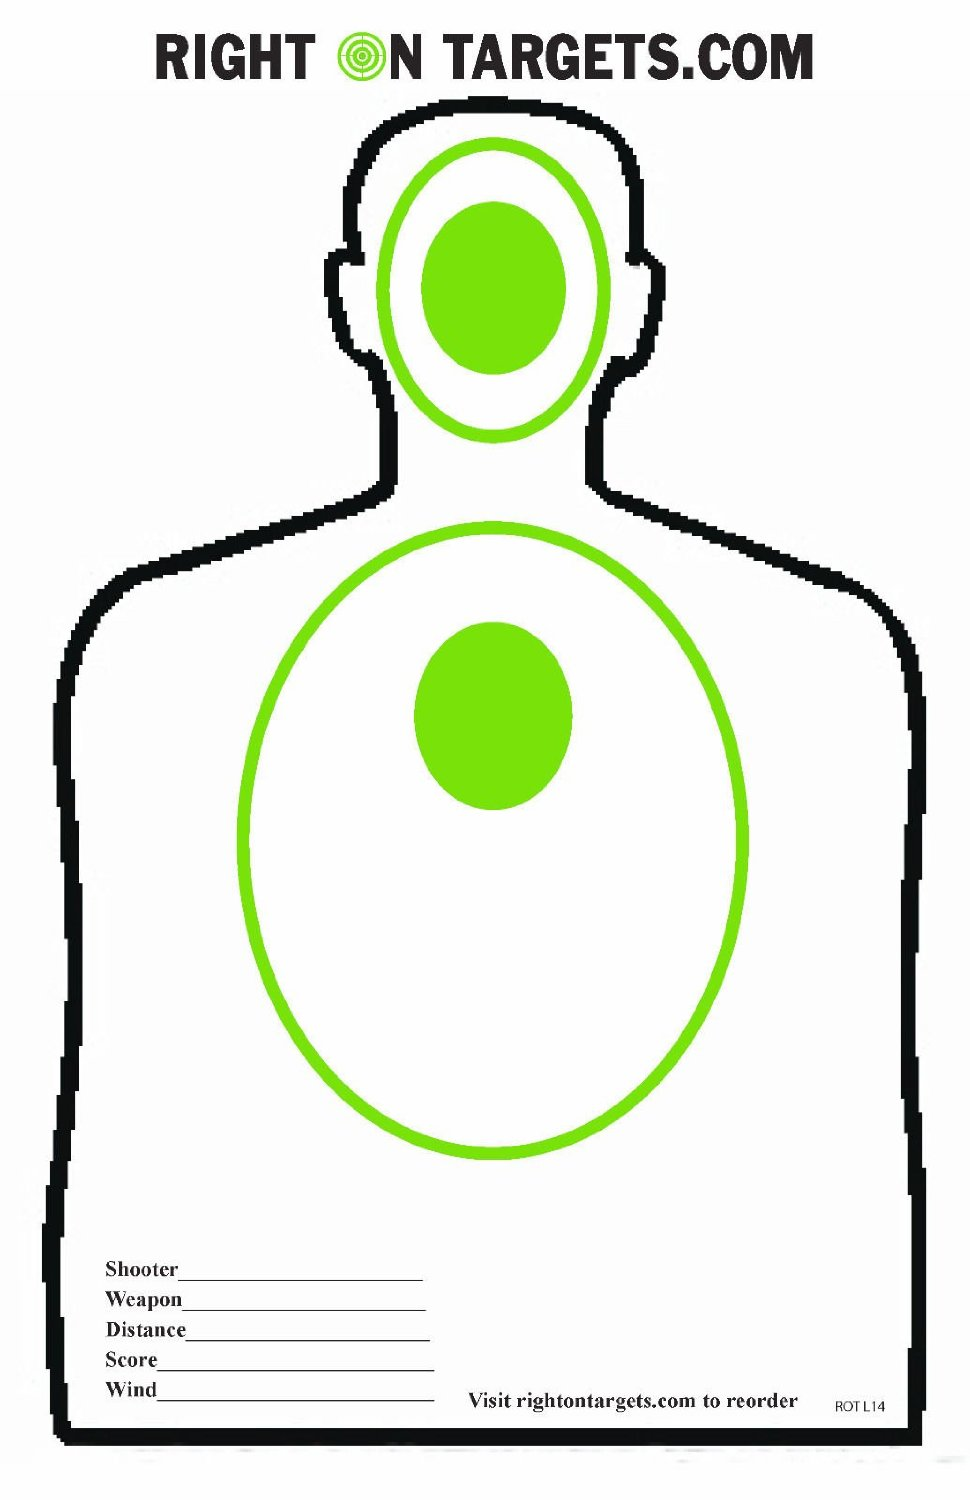 50 Green & Black Silhouette Hand Gun and Rifle Paper Shooting Targets (11x17)